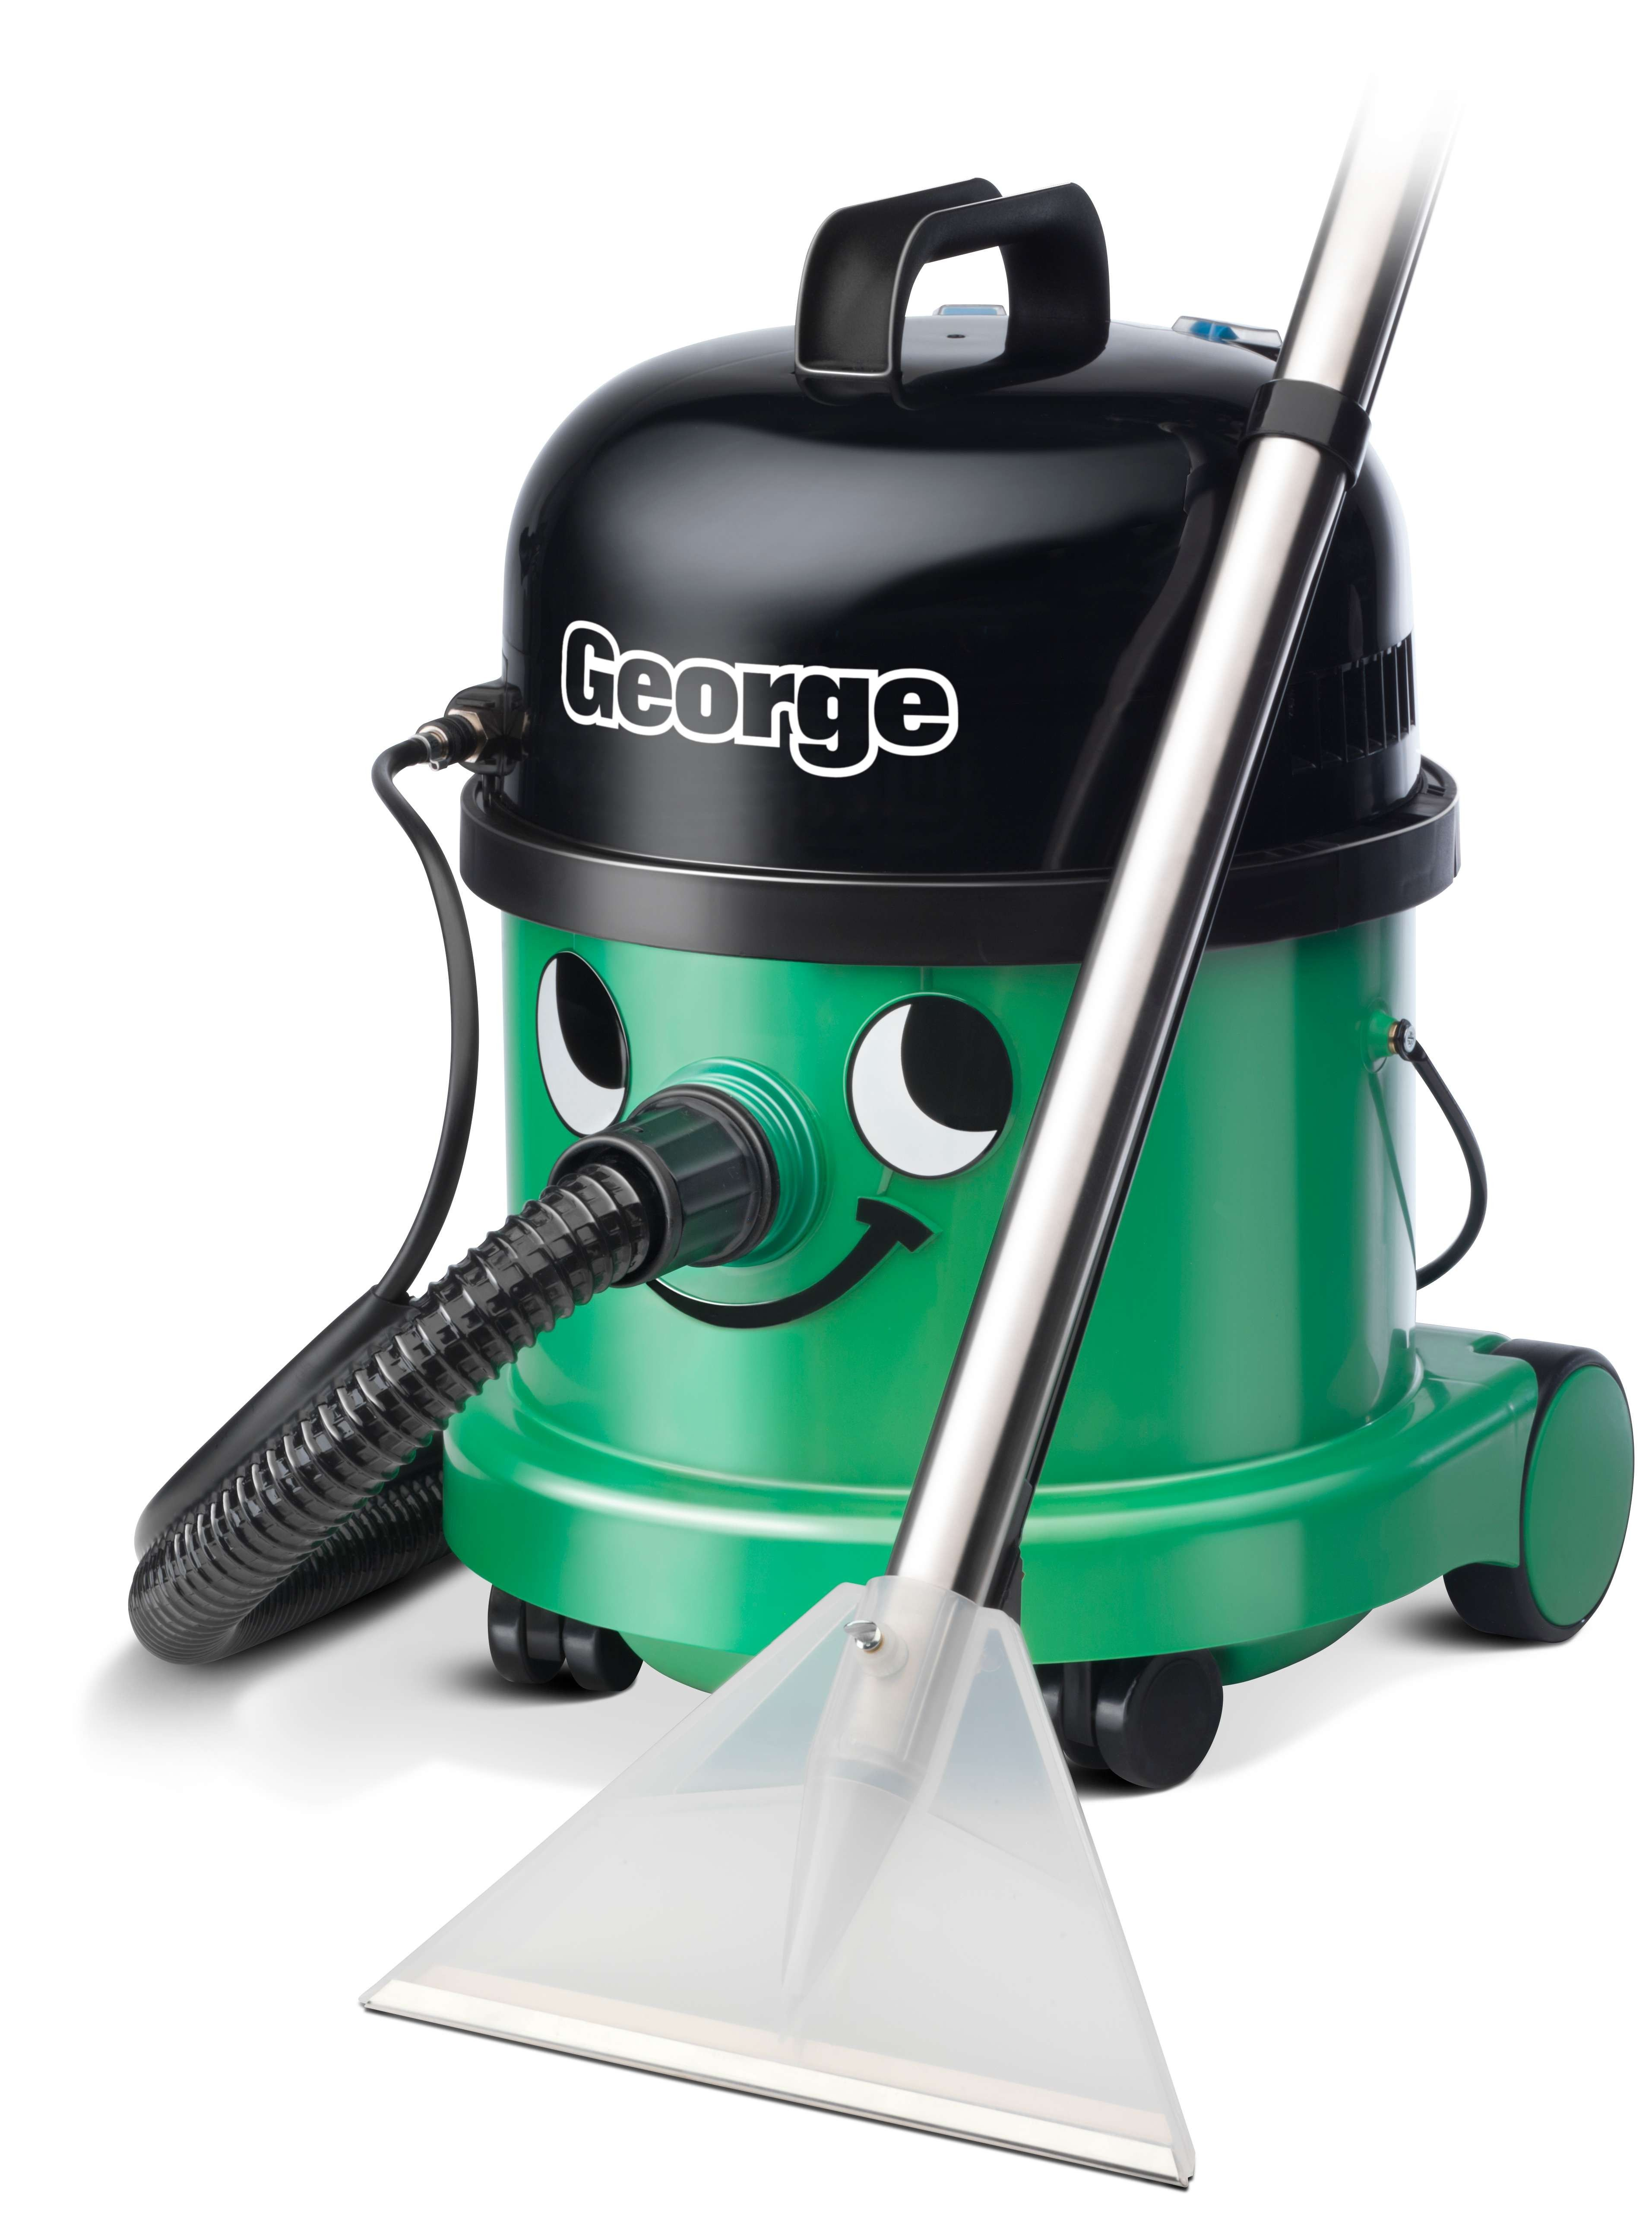 Numatic George 3 in 1 Vacuum Cleaner £220 00 from